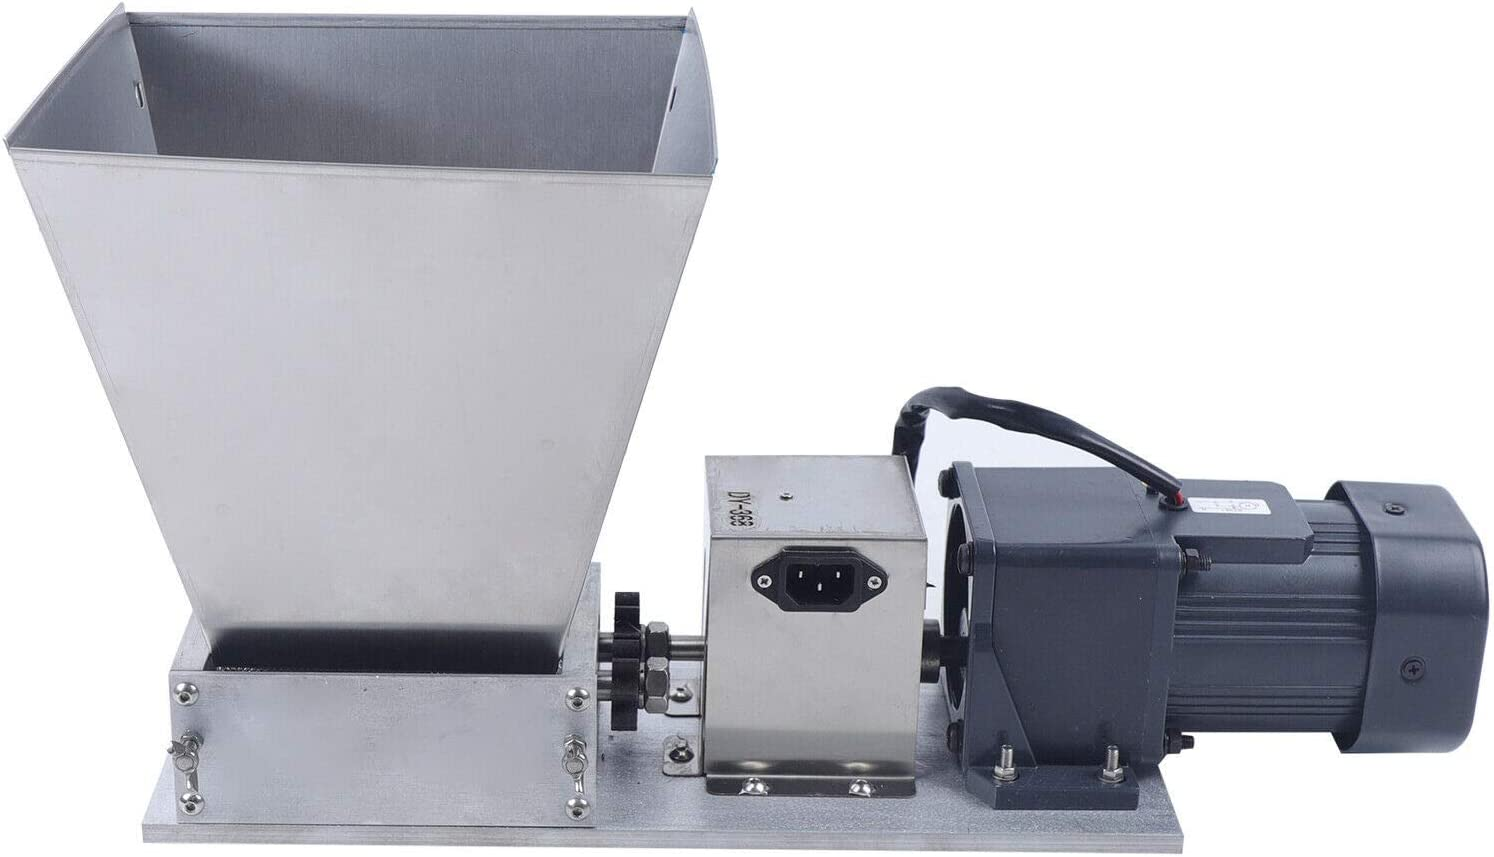 20kg h 60W Electric Max 51% OFF Grain Mill 4 years warranty Malt M Home Crusher Grinder